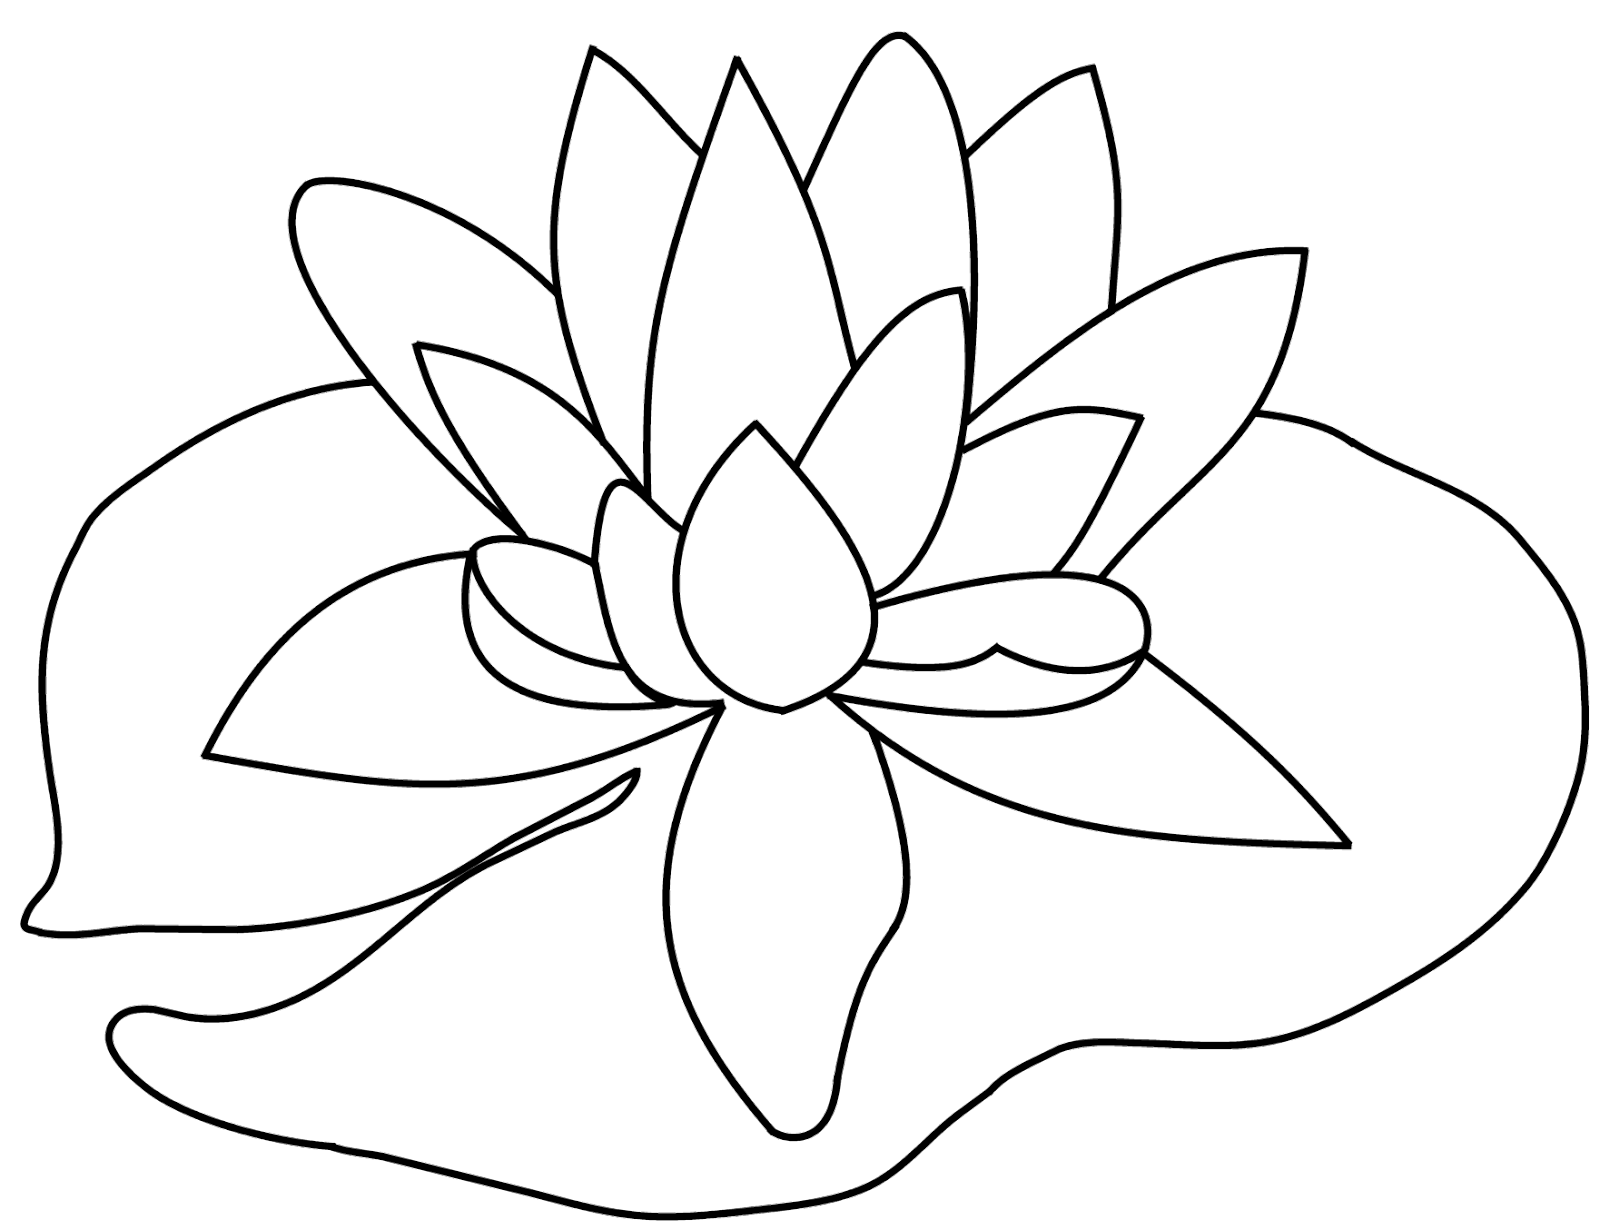 Lily pad flower clipart black and white jpg freeuse download Scribbles Designs: #F 35 Lily Pad (Free) jpg freeuse download